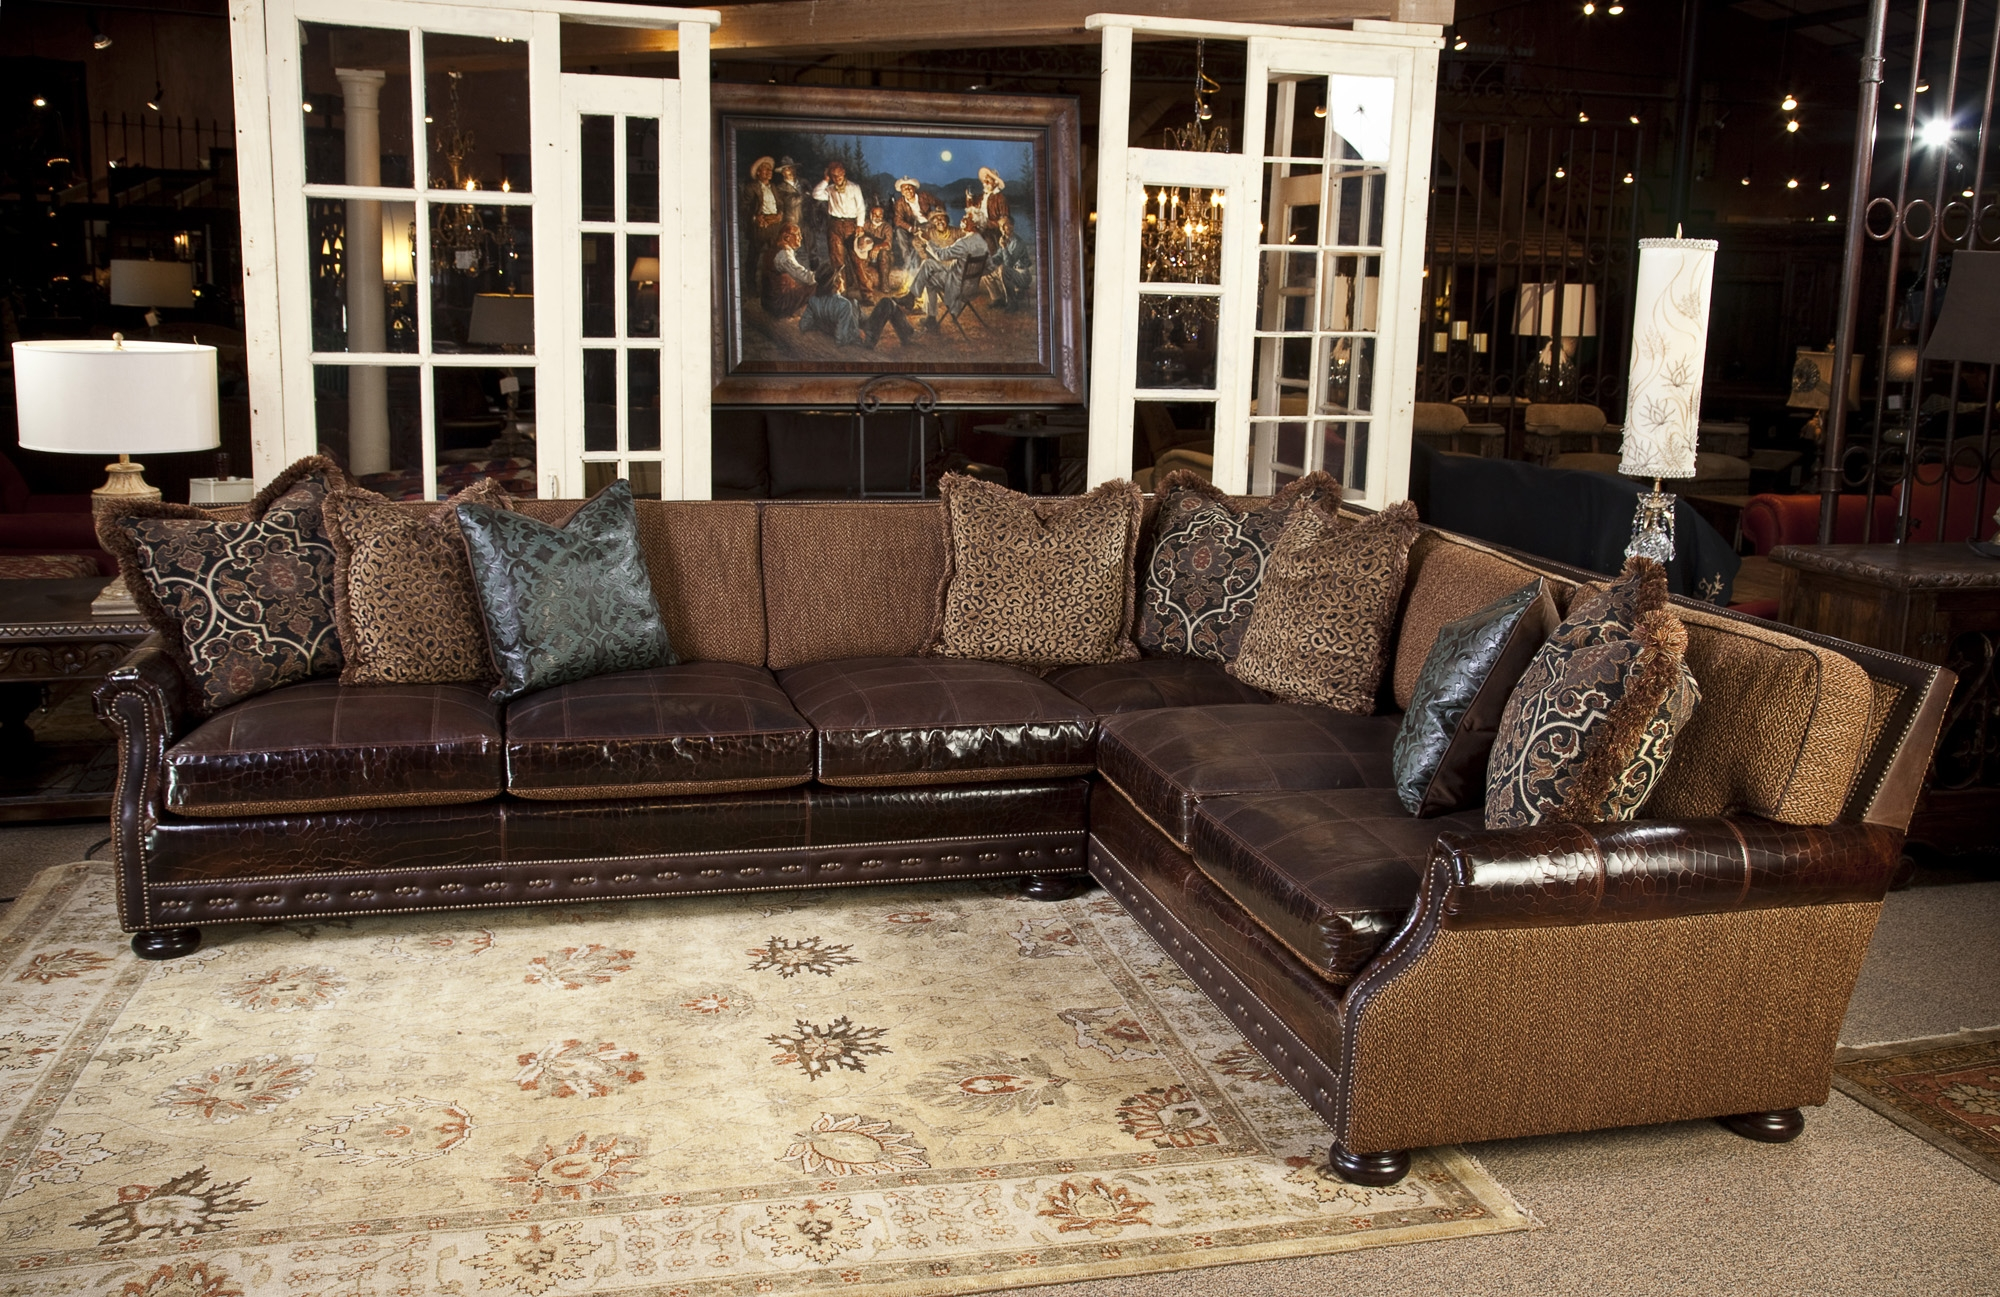 Fabric And Leather Sectional Sofa Great For Media Room All For Abbyson Living Charlotte Dark Brown Sectional Sofa And Ottoman (Image 12 of 15)